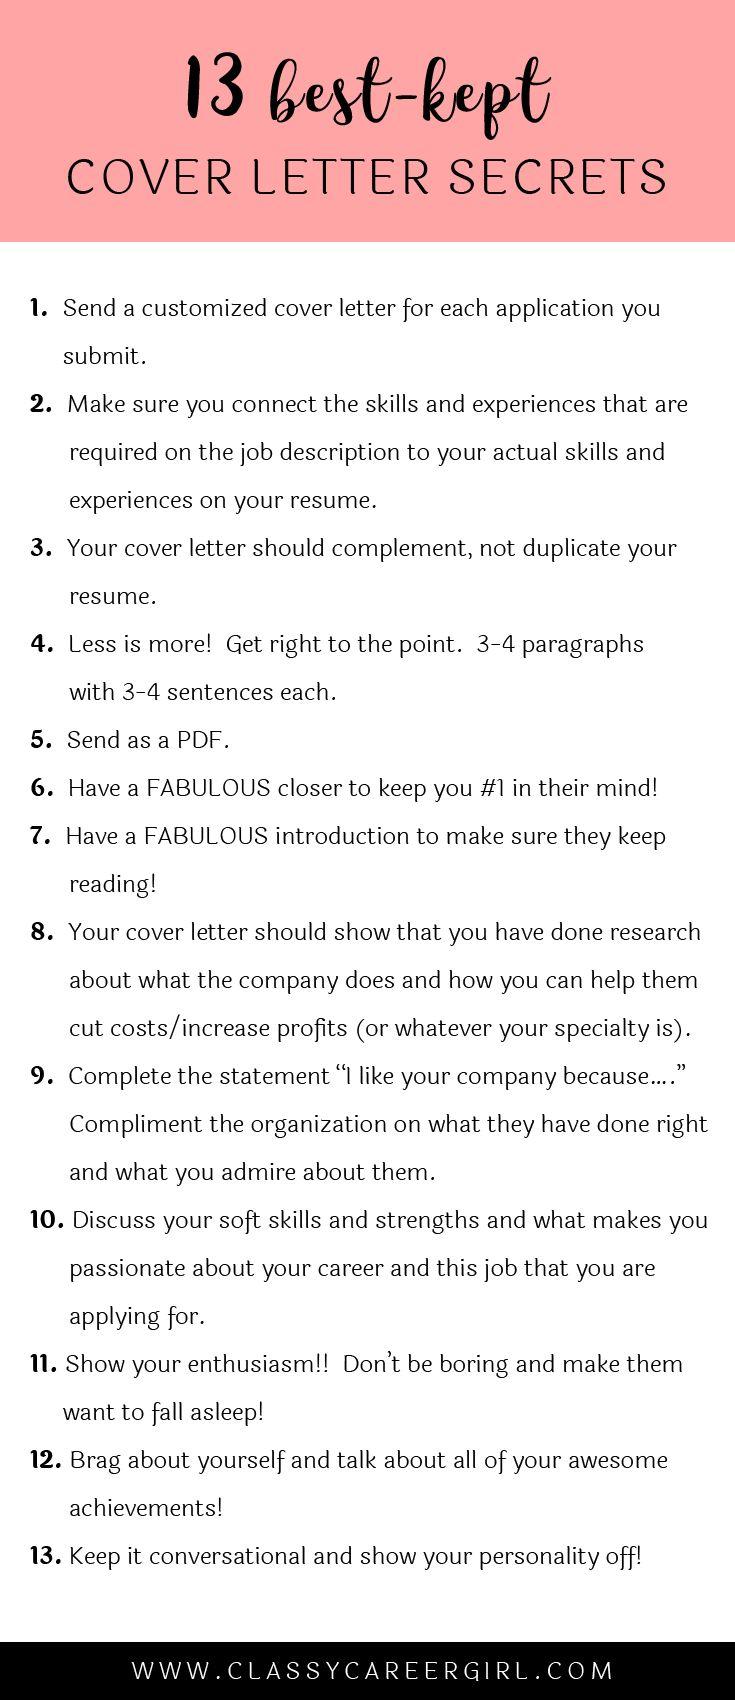 best 25 cover letters ideas on pinterest cover letter example cover letter tips and resume tips - How To Write An Interesting Cover Letter